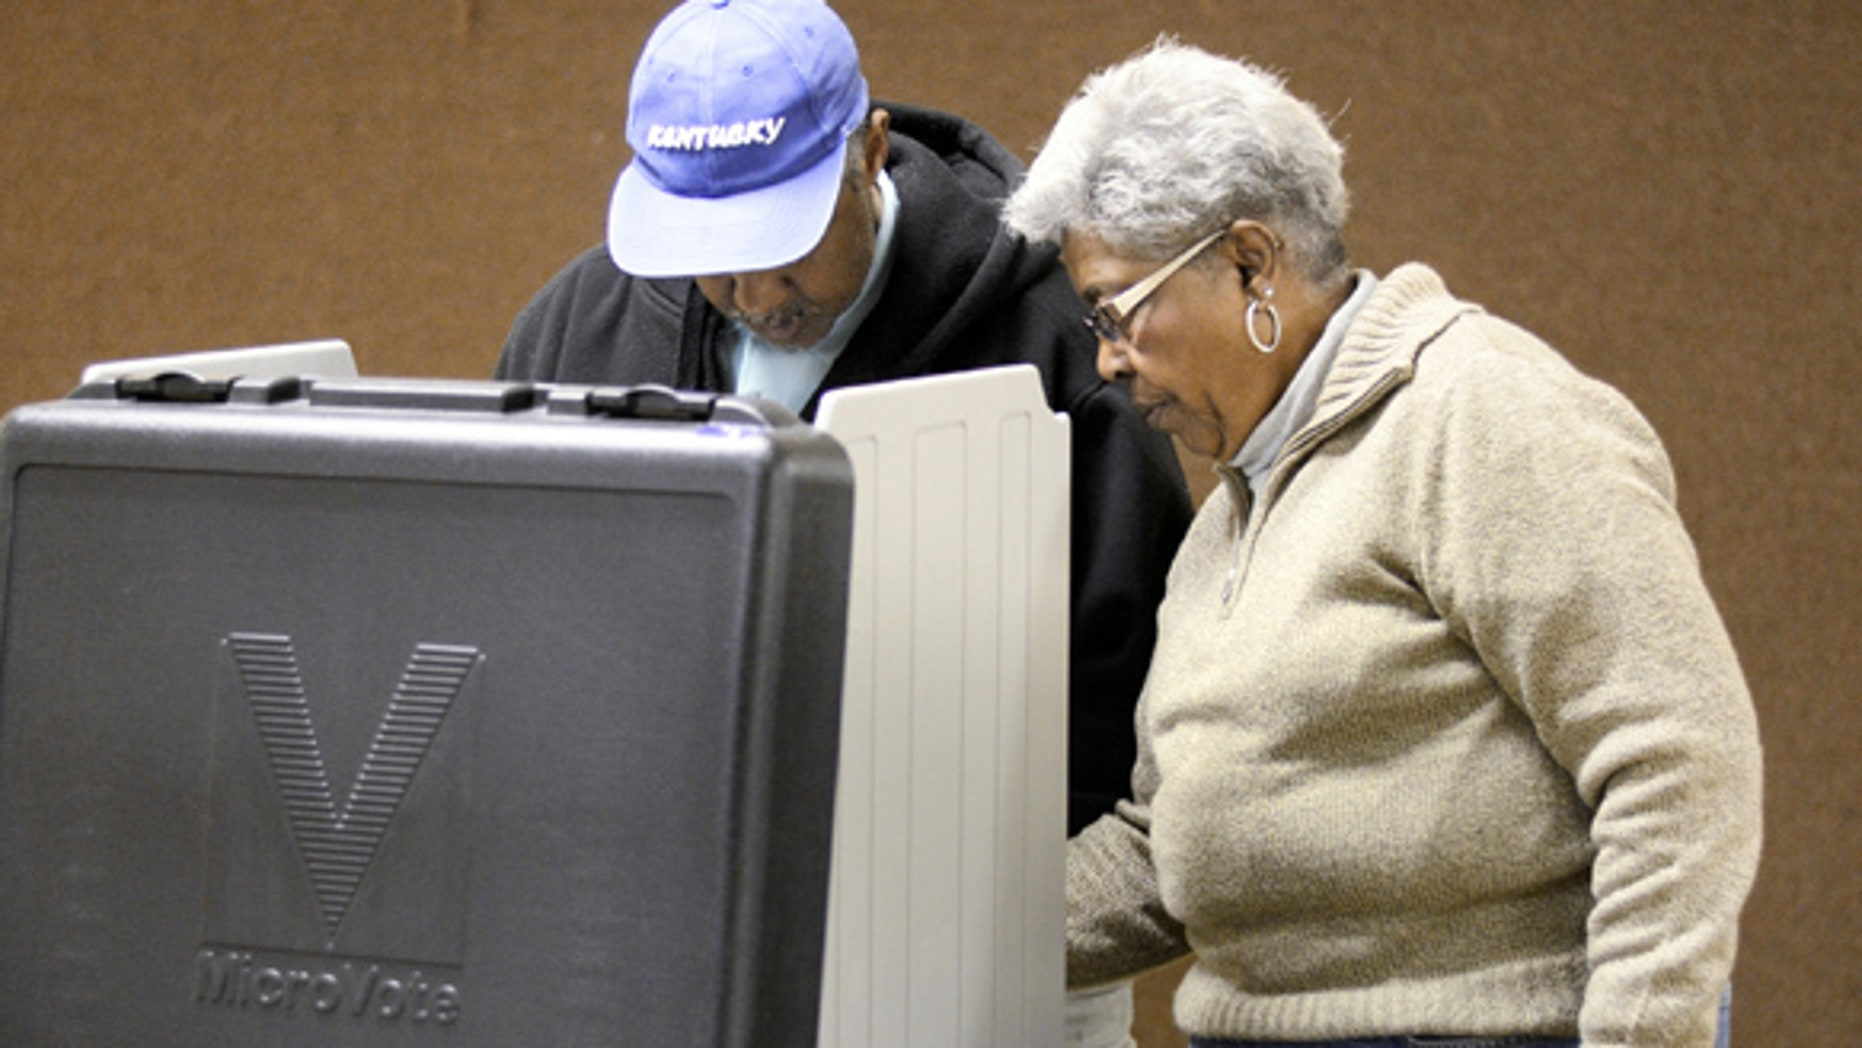 Experts say voting machines could be susceptible to hacking. (AP)